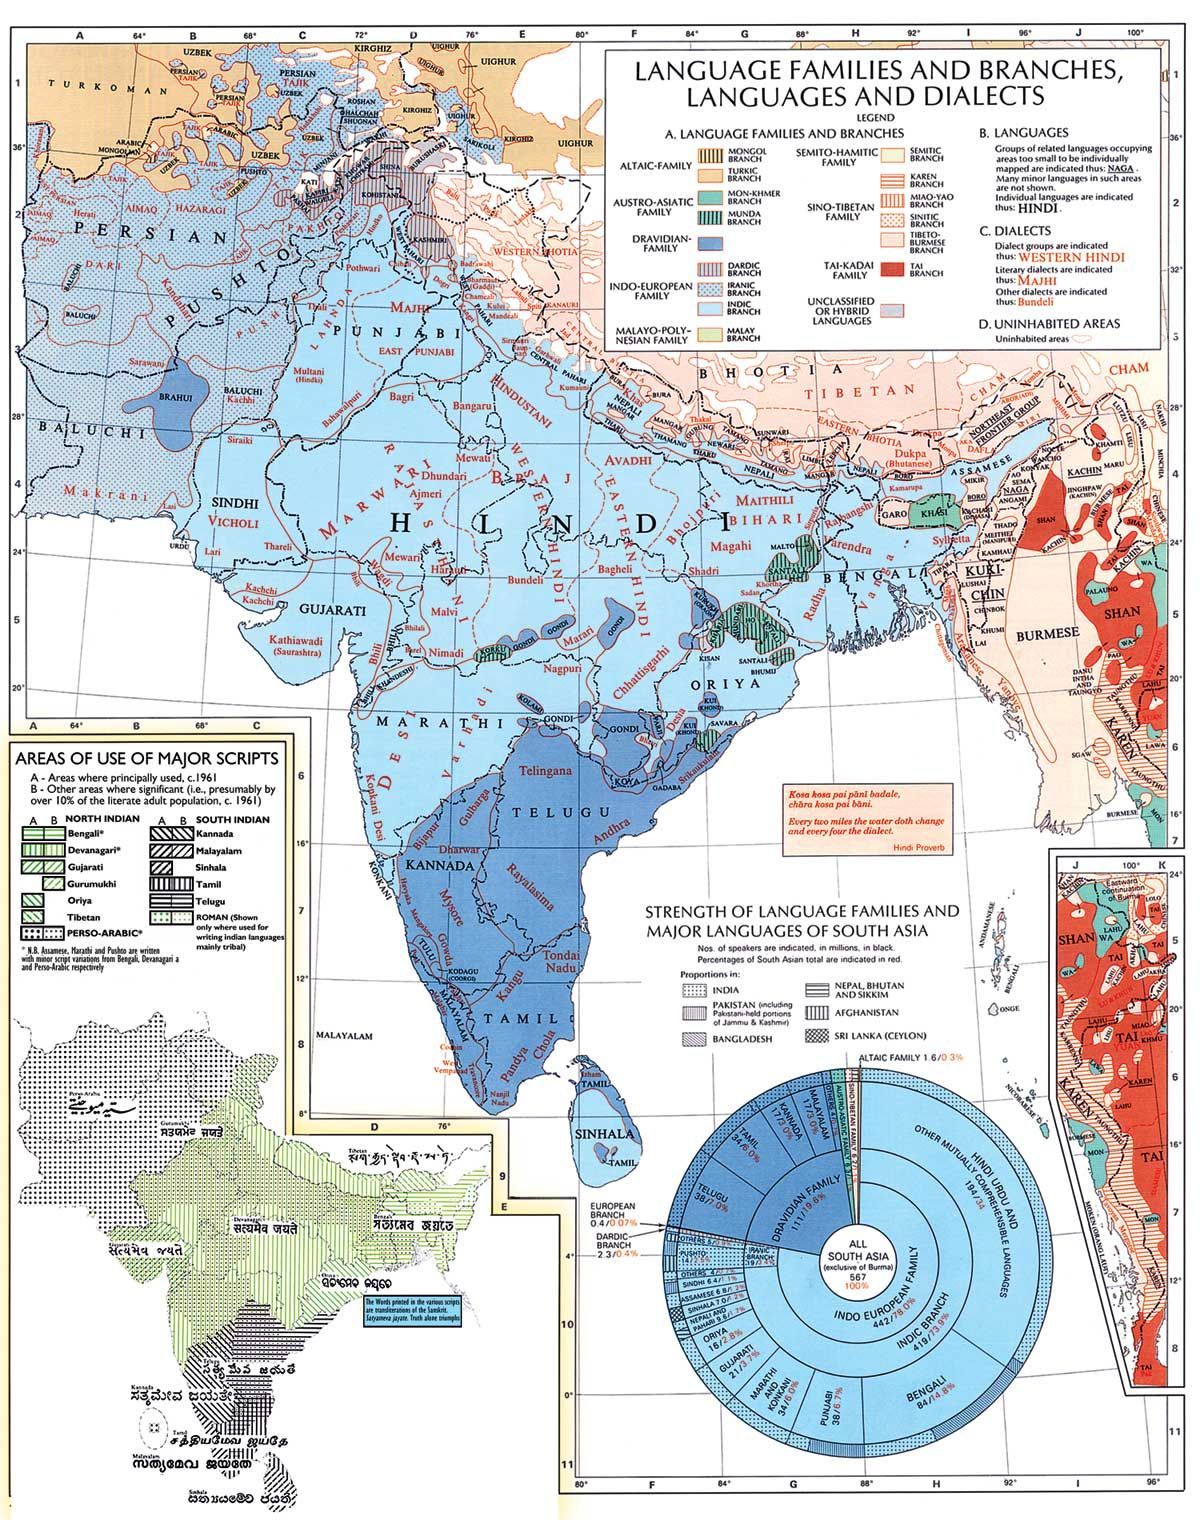 A Map of Indian Language Families, Languages, and Dialects